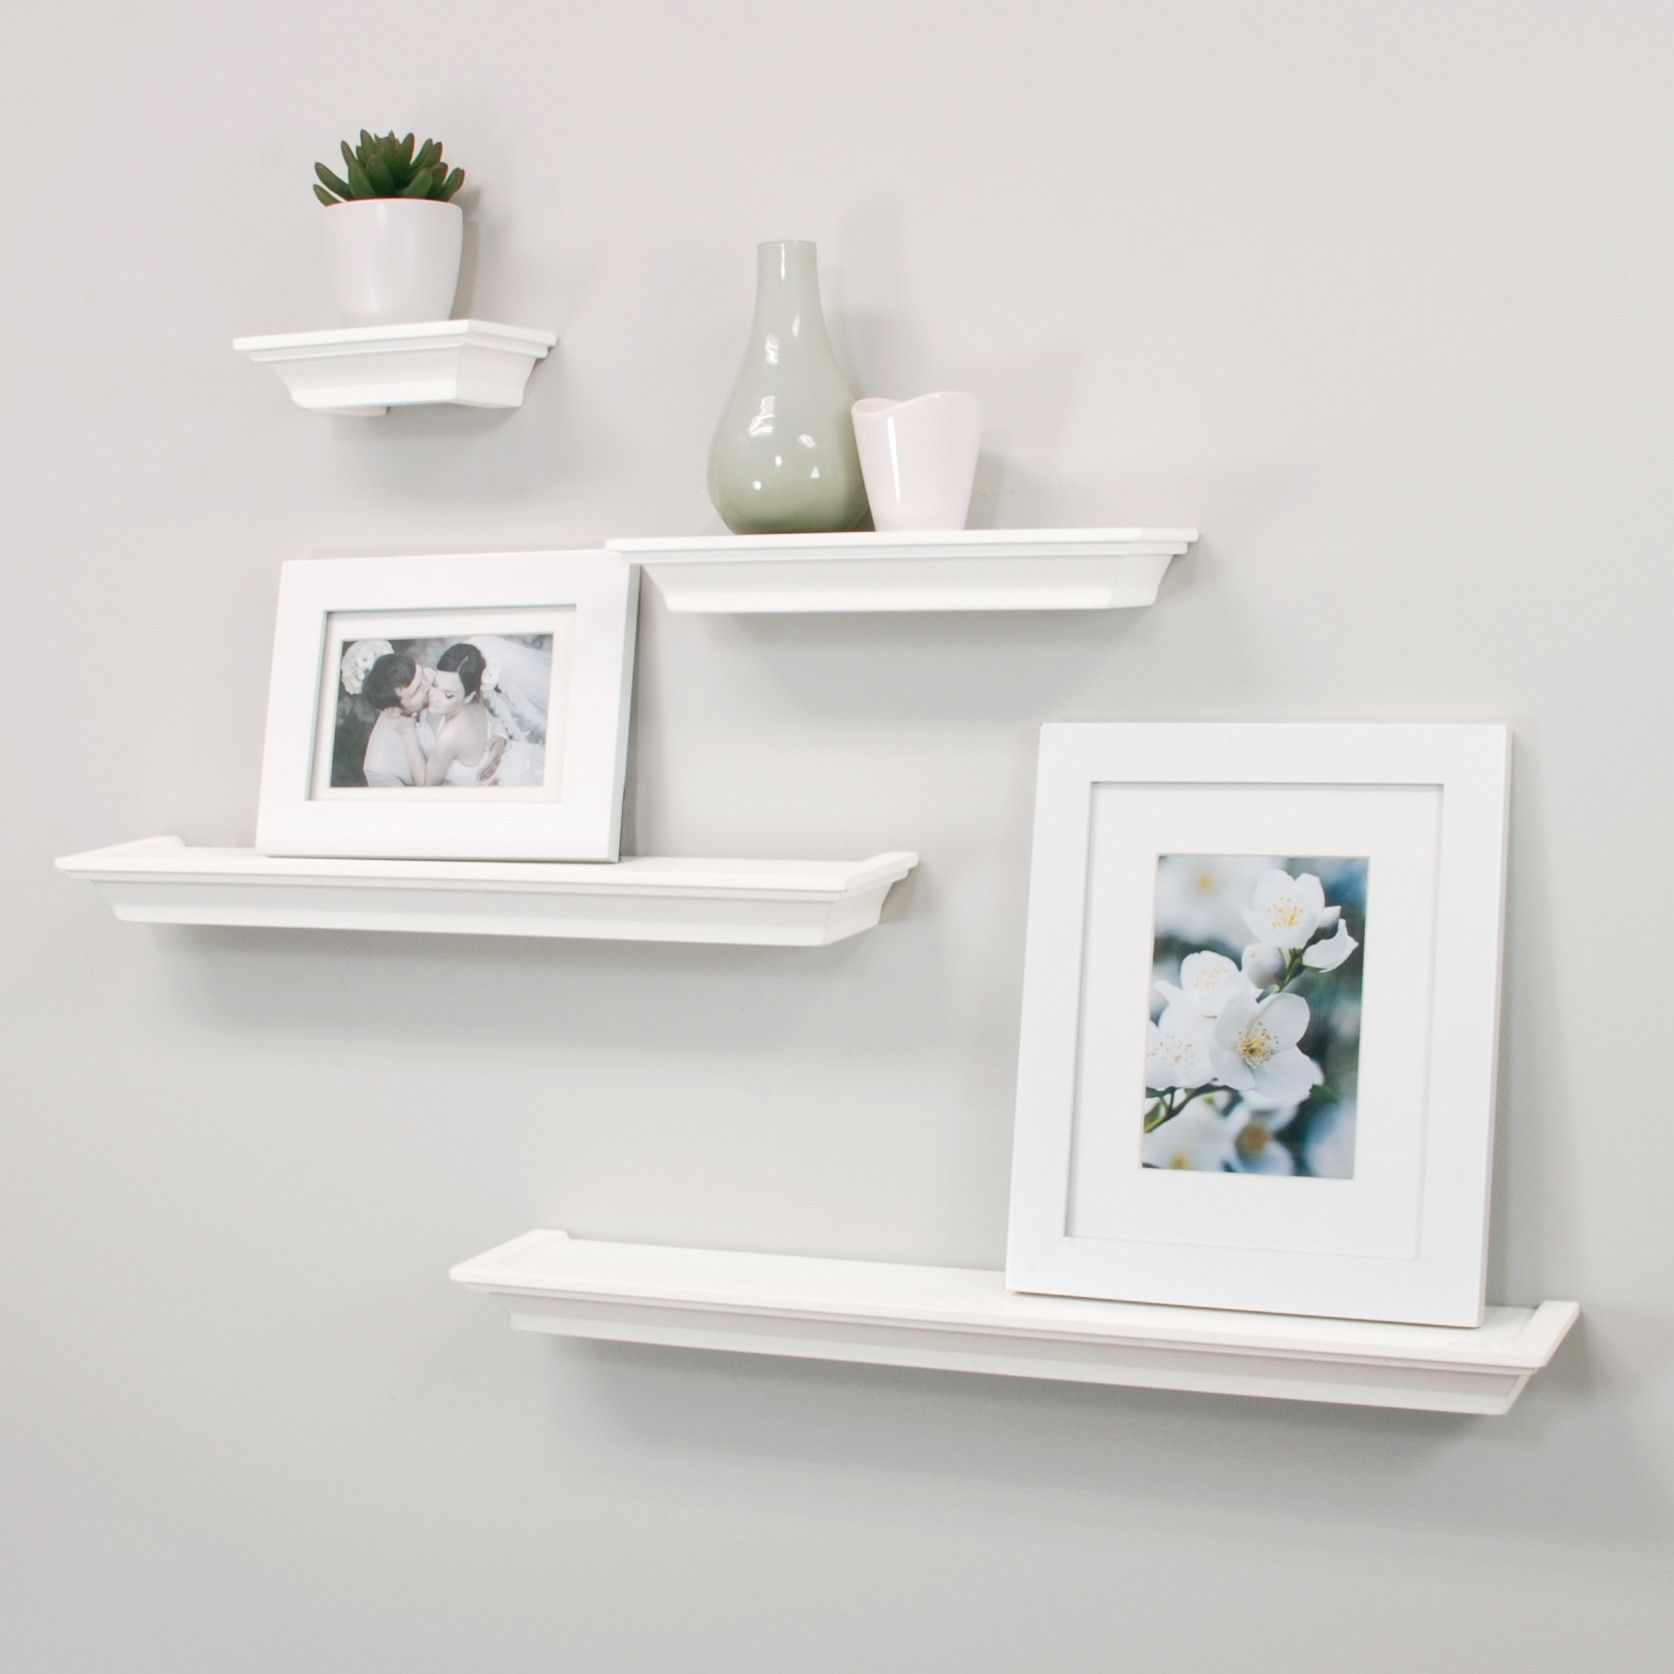 Melannco Floating Shelves Features Set Of Four Contoured Ledge Style Shelvingvarious